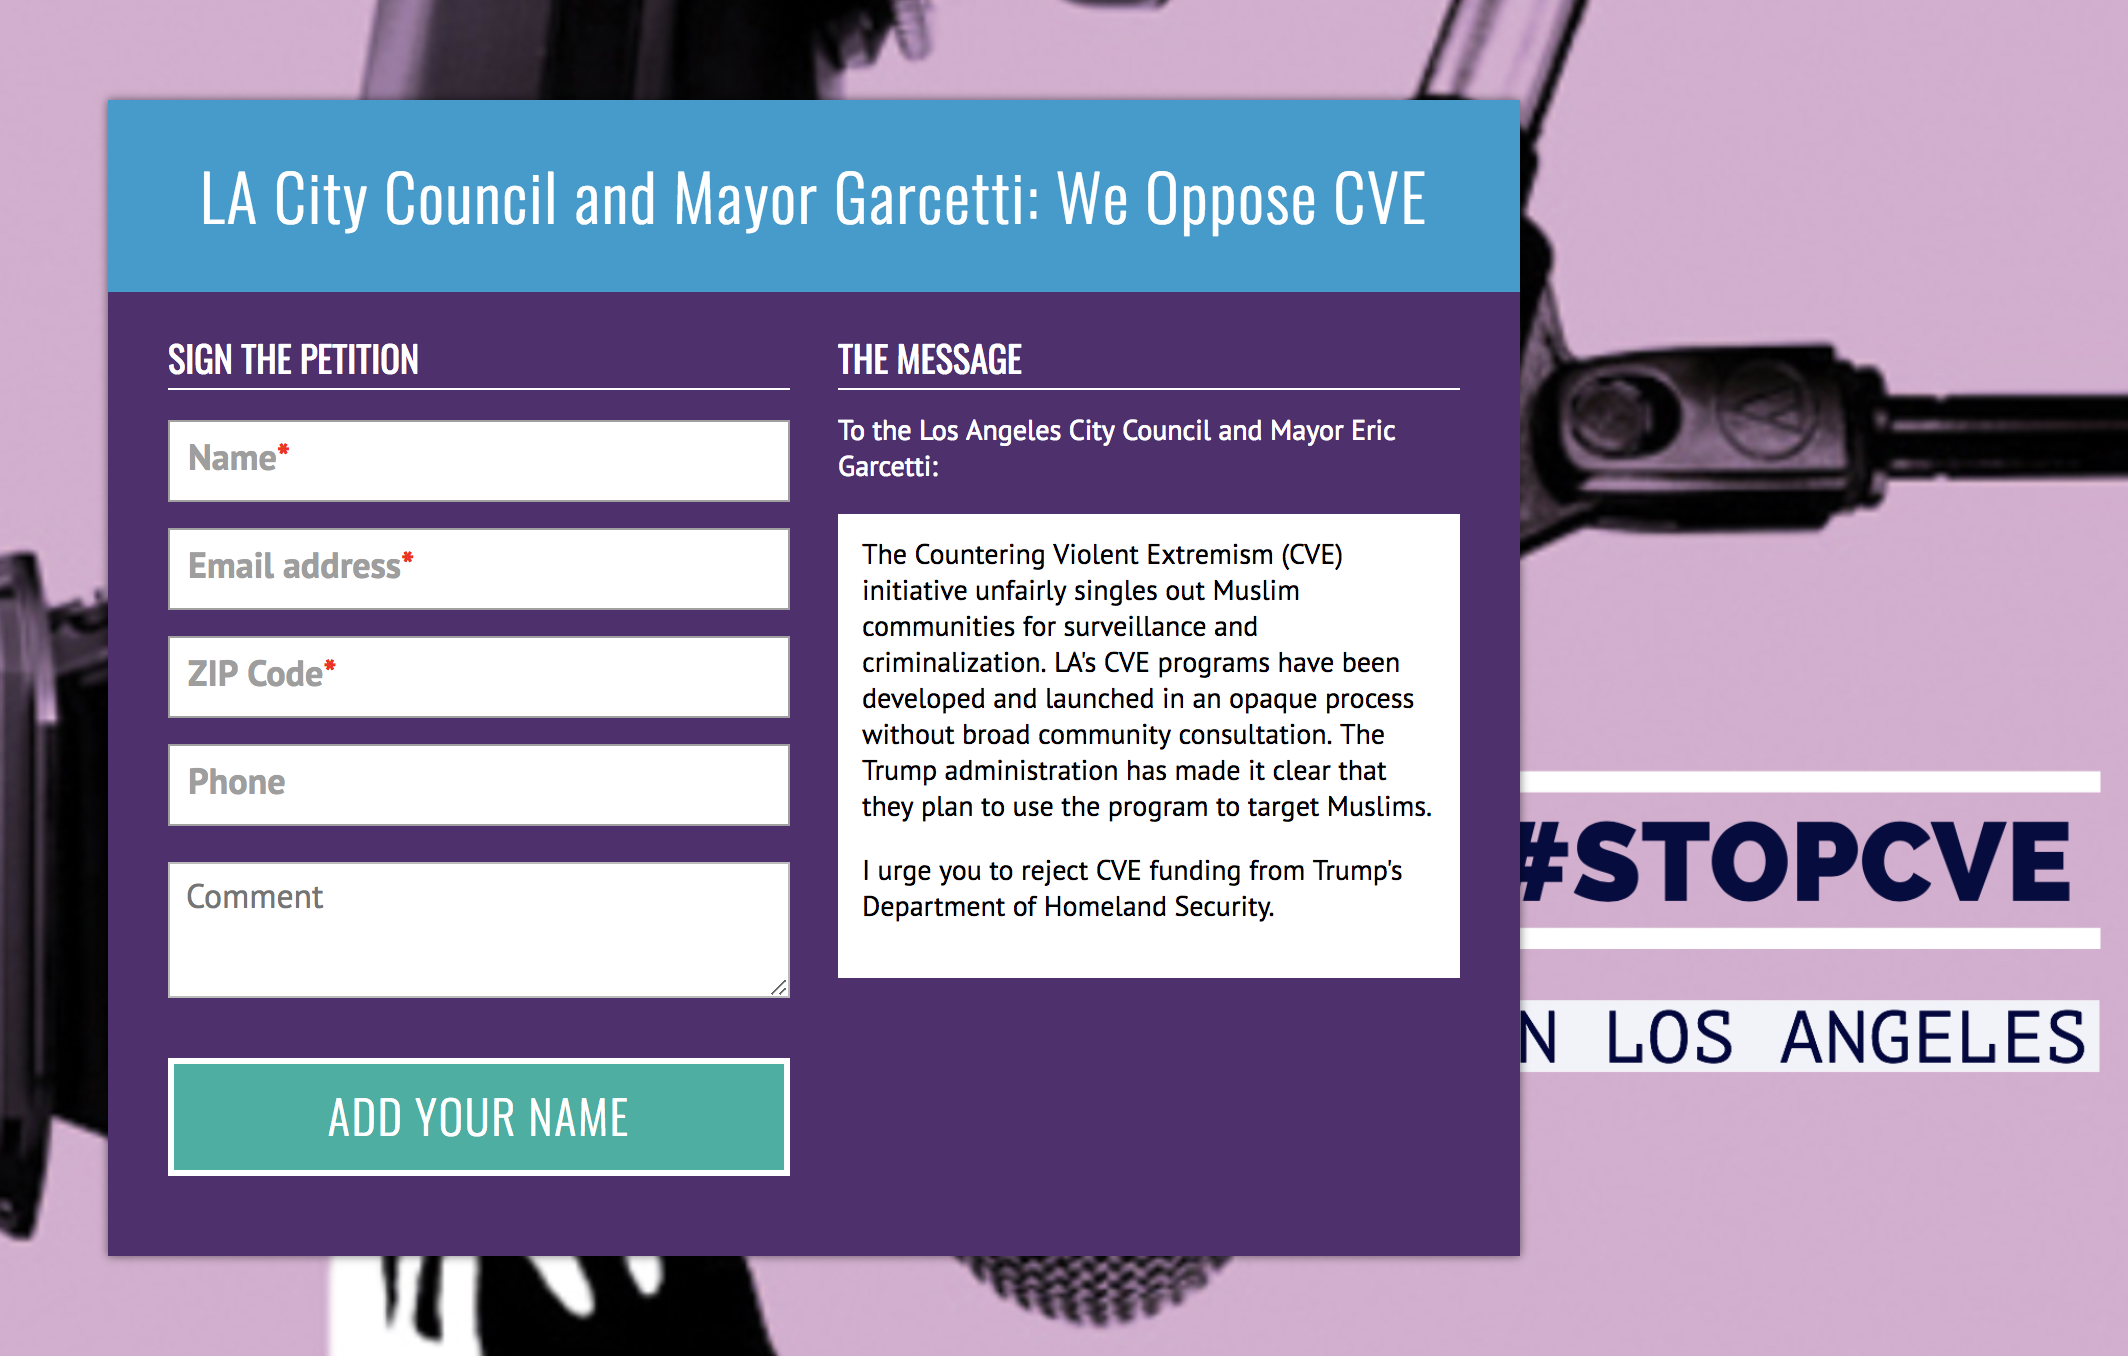 A Petition - MPower Change along with a coalition of organizations in Los Angeles drafted and circulated an anti-CVE petition resulting in over 1500 signatures. This petition was presented to LA City Council.